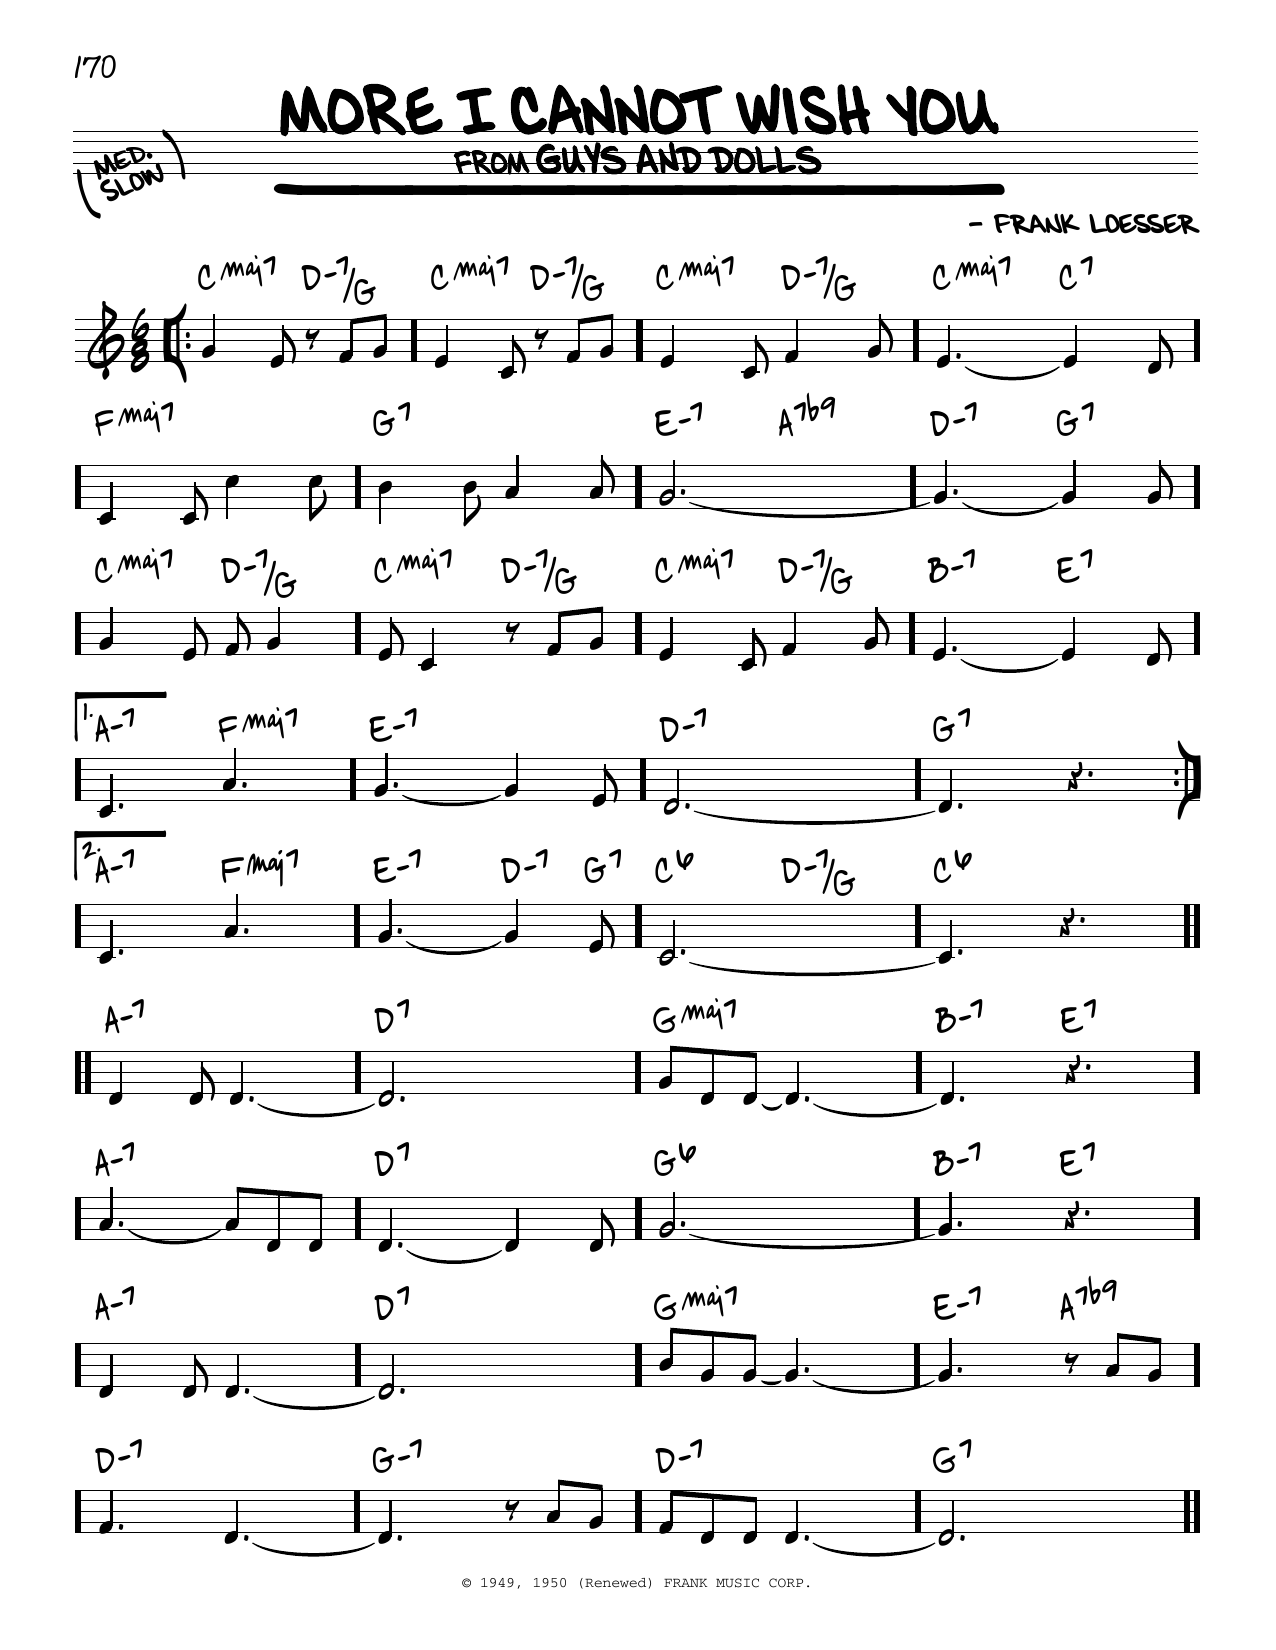 More I Cannot Wish You Sheet Music